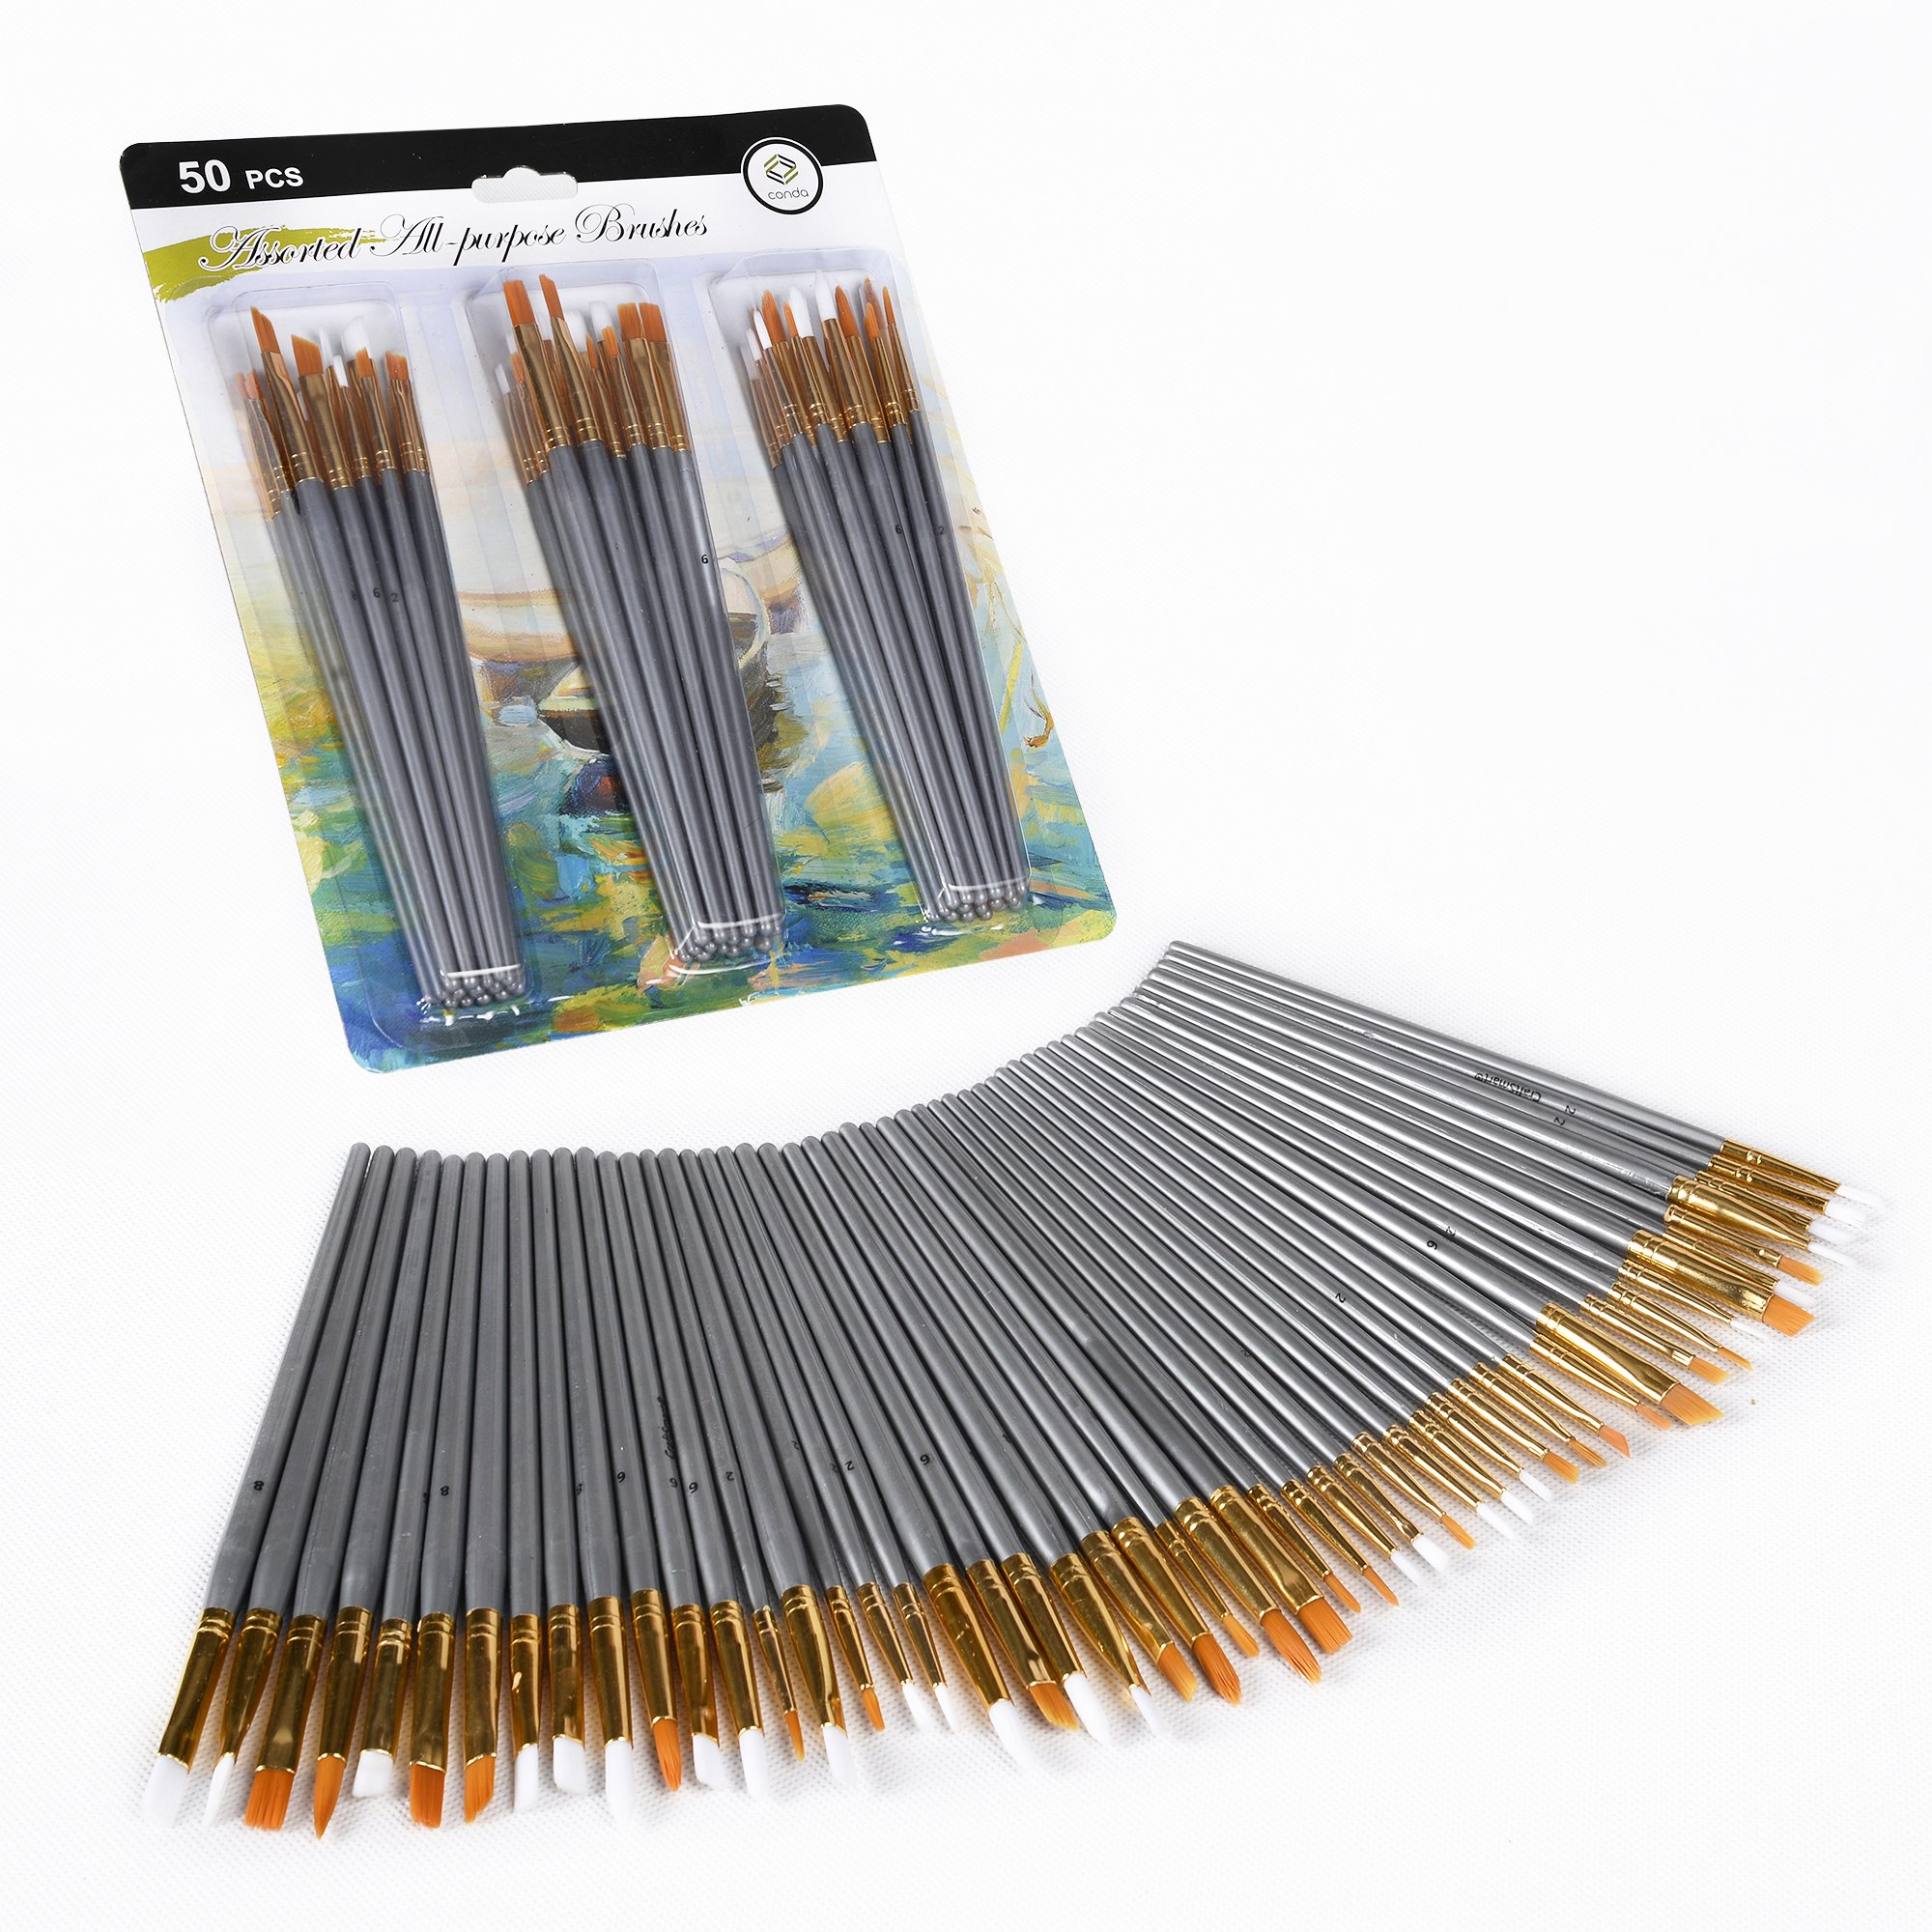 CONDA 50 pcs Assorted All- Purpose Paint Brush Set for Acrylic, Oil, Watercolors